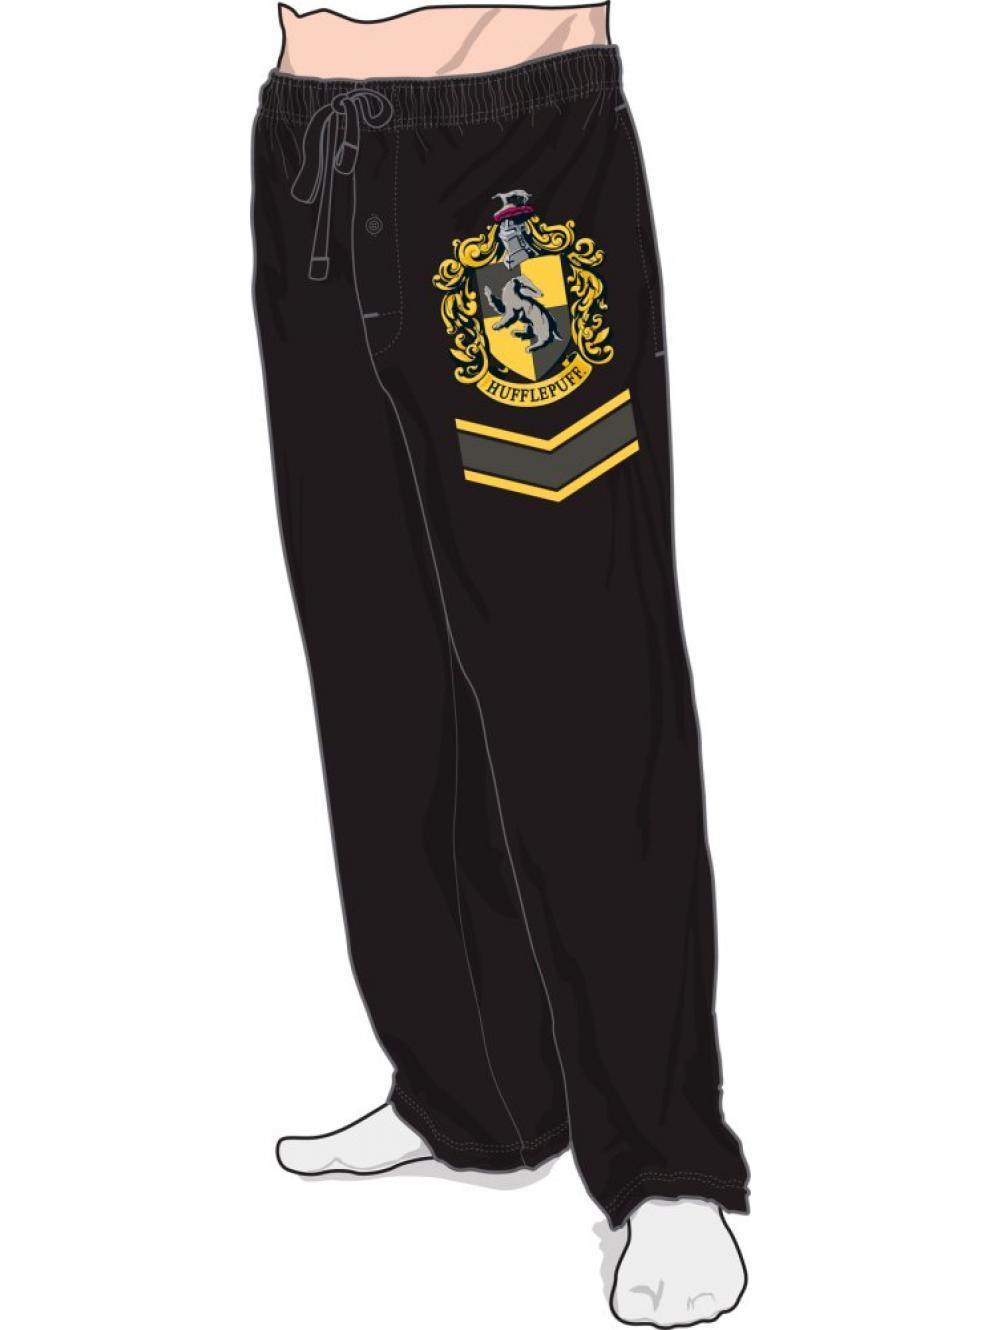 HARRY POTTER - Pantalon Pyjama - Hufflepuff (L)